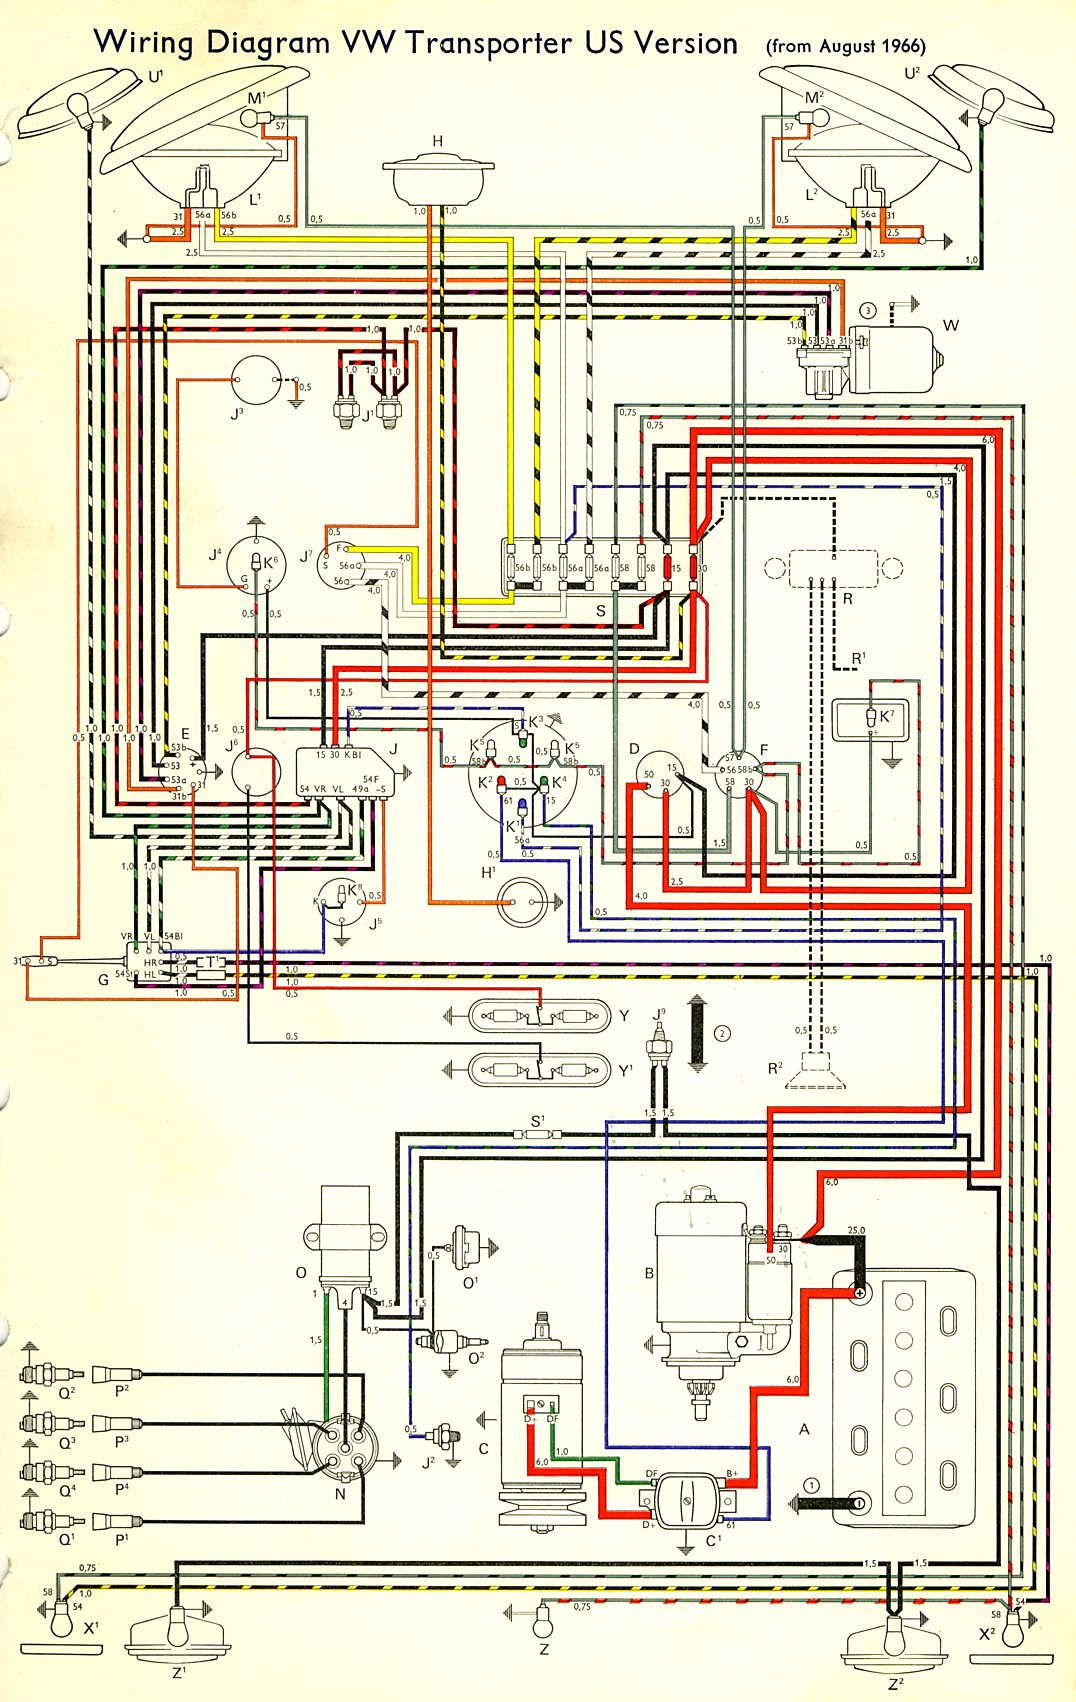 65 Vw Wiring Diagram List Of Schematic Circuit Ford Alternator 5 Wire Thesamba Com Type 2 Diagrams Rh Beetle